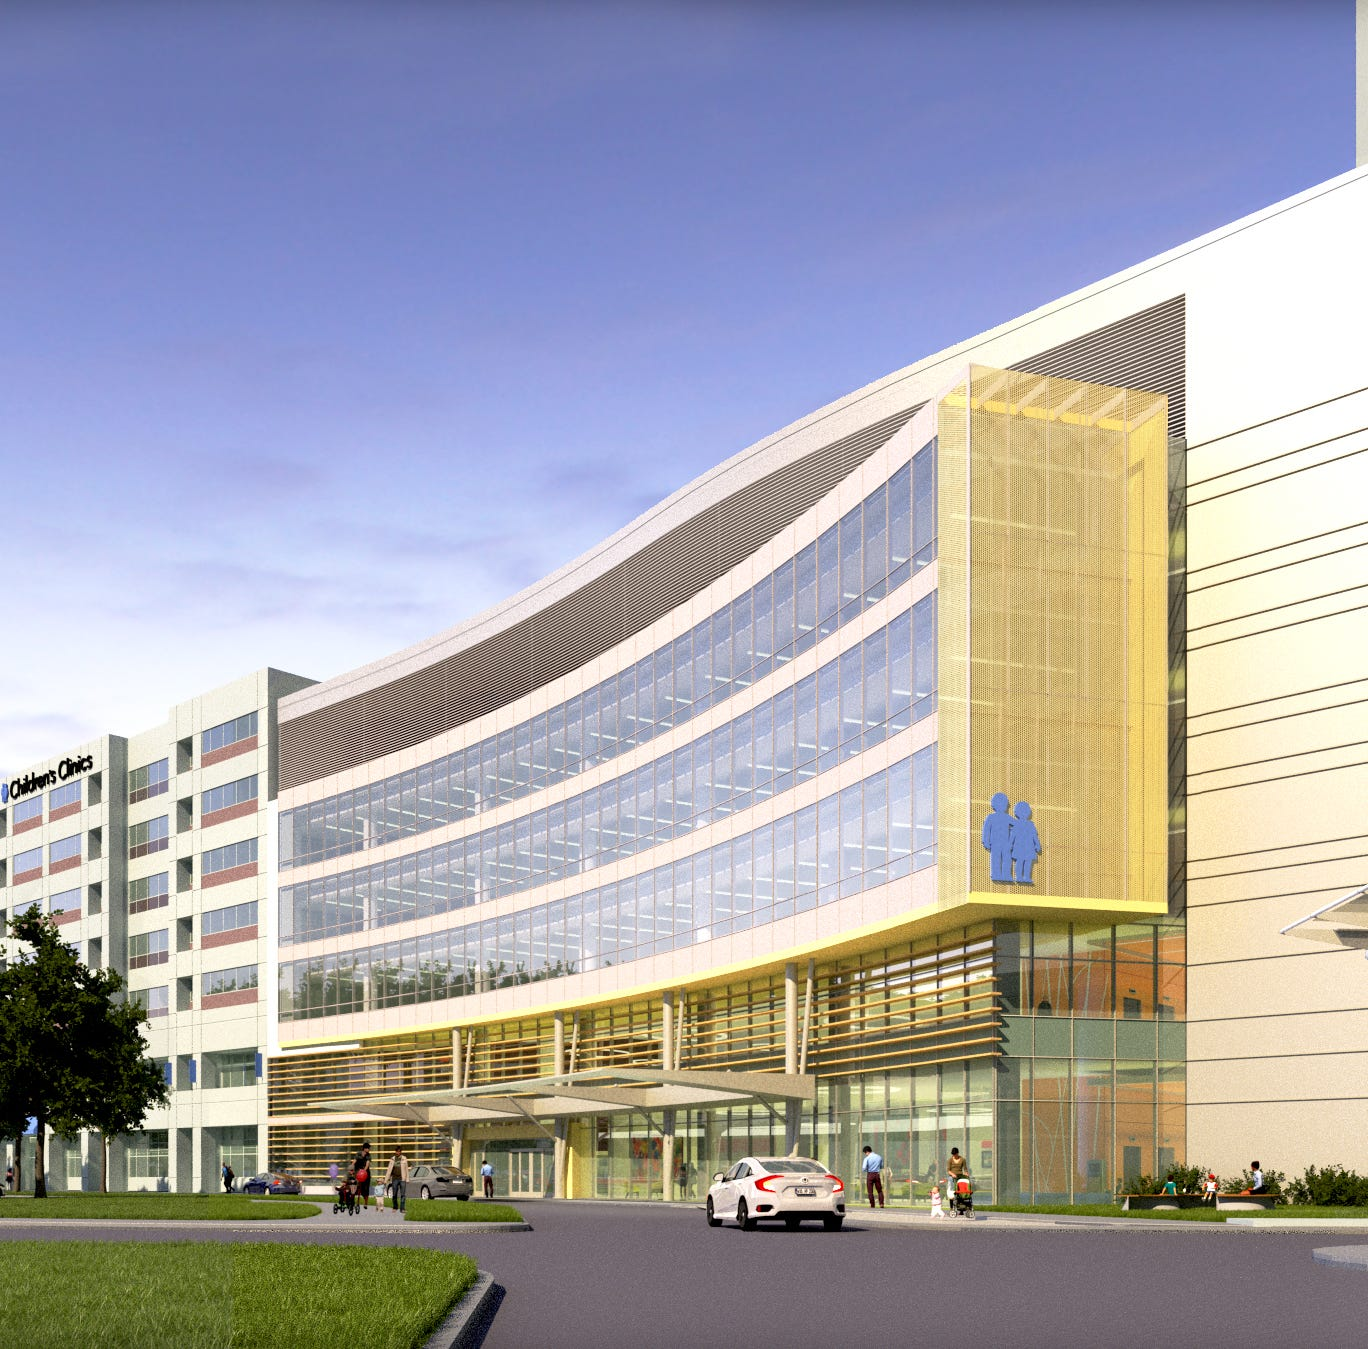 Children's Hospital of Wisconsin plans $265 million expansion at its Wauwatosa campus